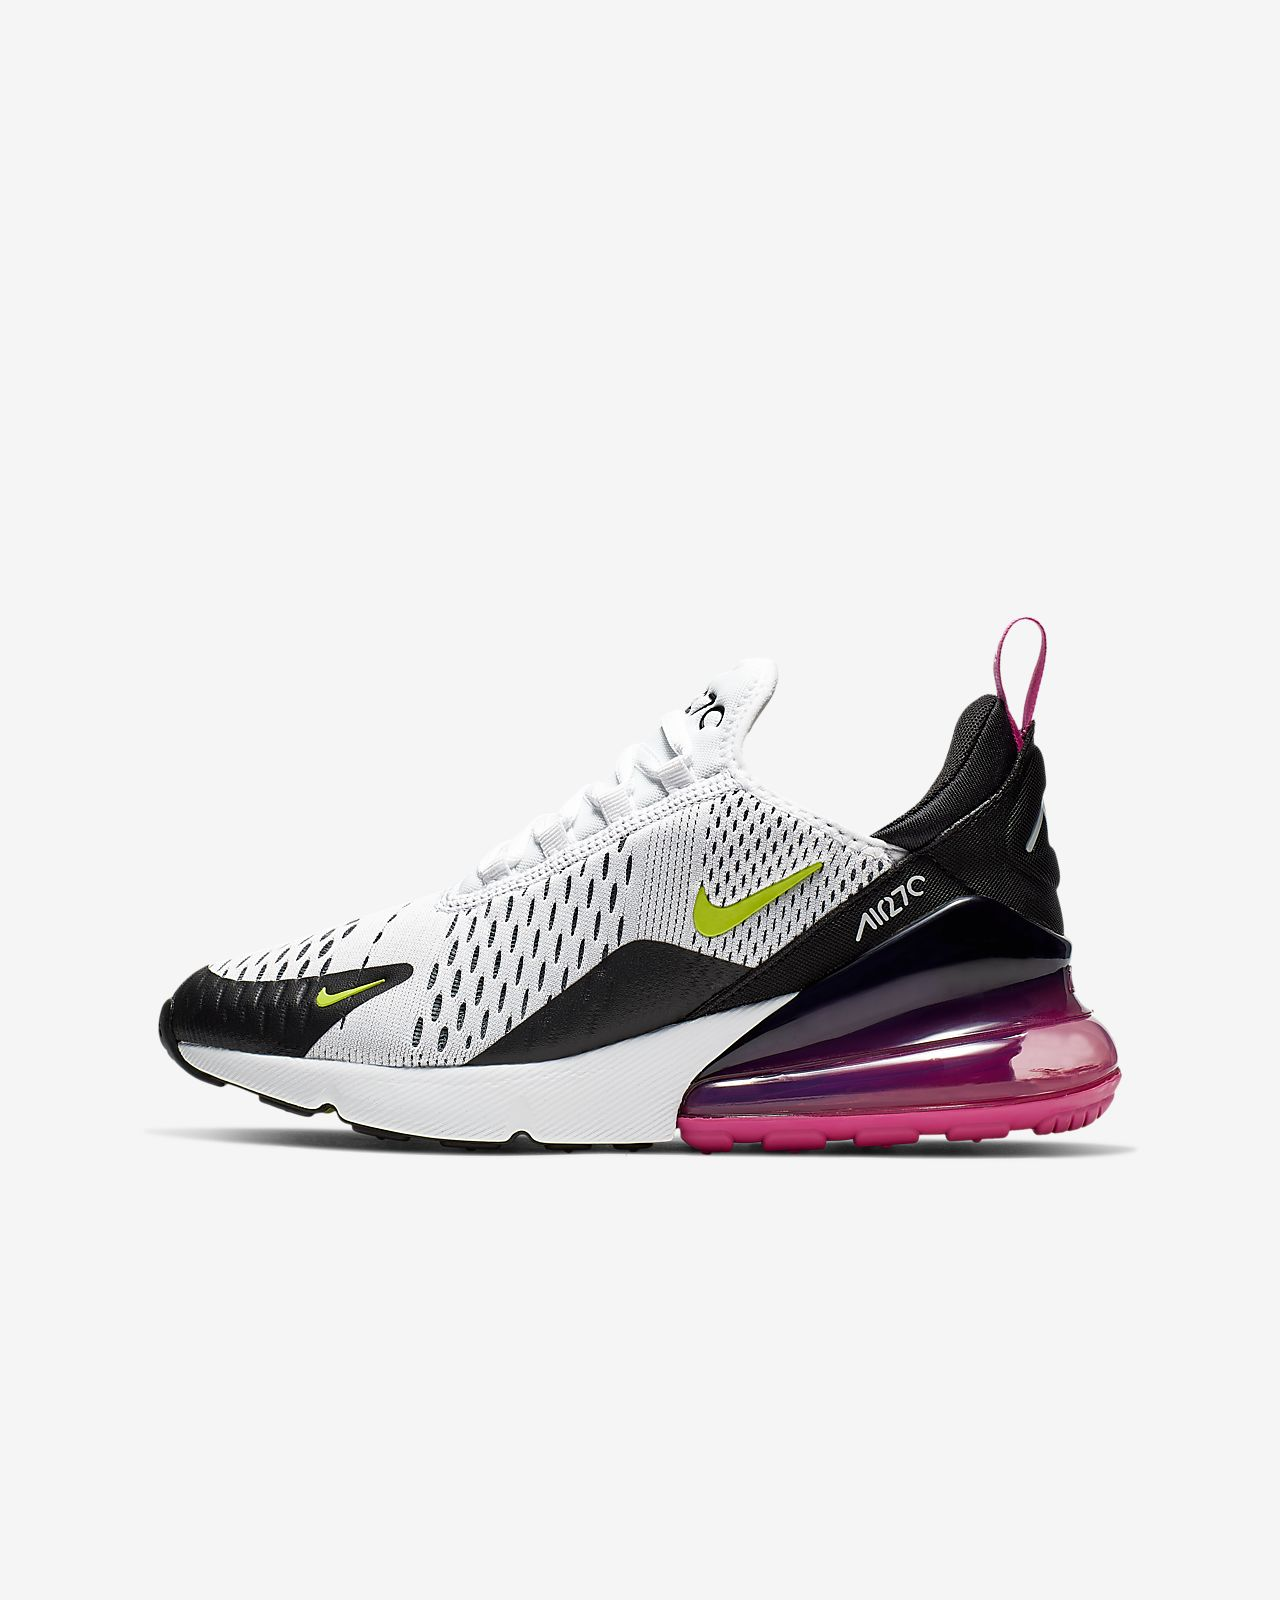 air max 270 enafnt